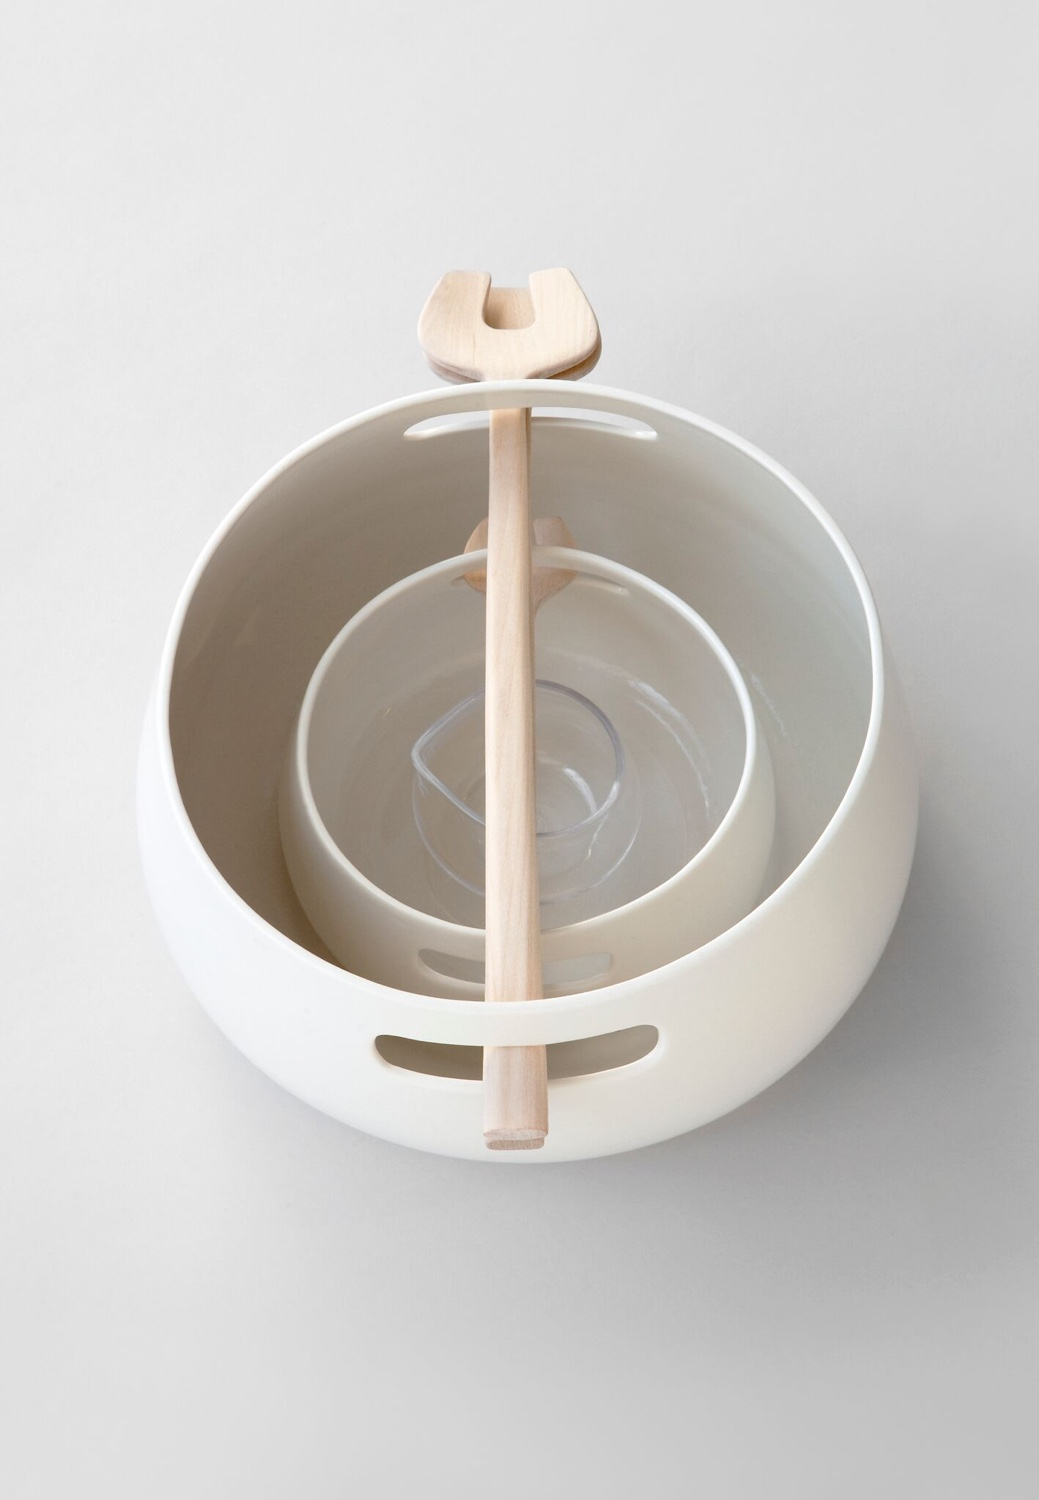 KOLMIKKO tableware by Finnish designer Maiju Uski. This clever set comprises a large and small porcelain bowl, a small glass jug and wooden utensils. Photo by Chikako Harada courtesy of Maiju Uski.